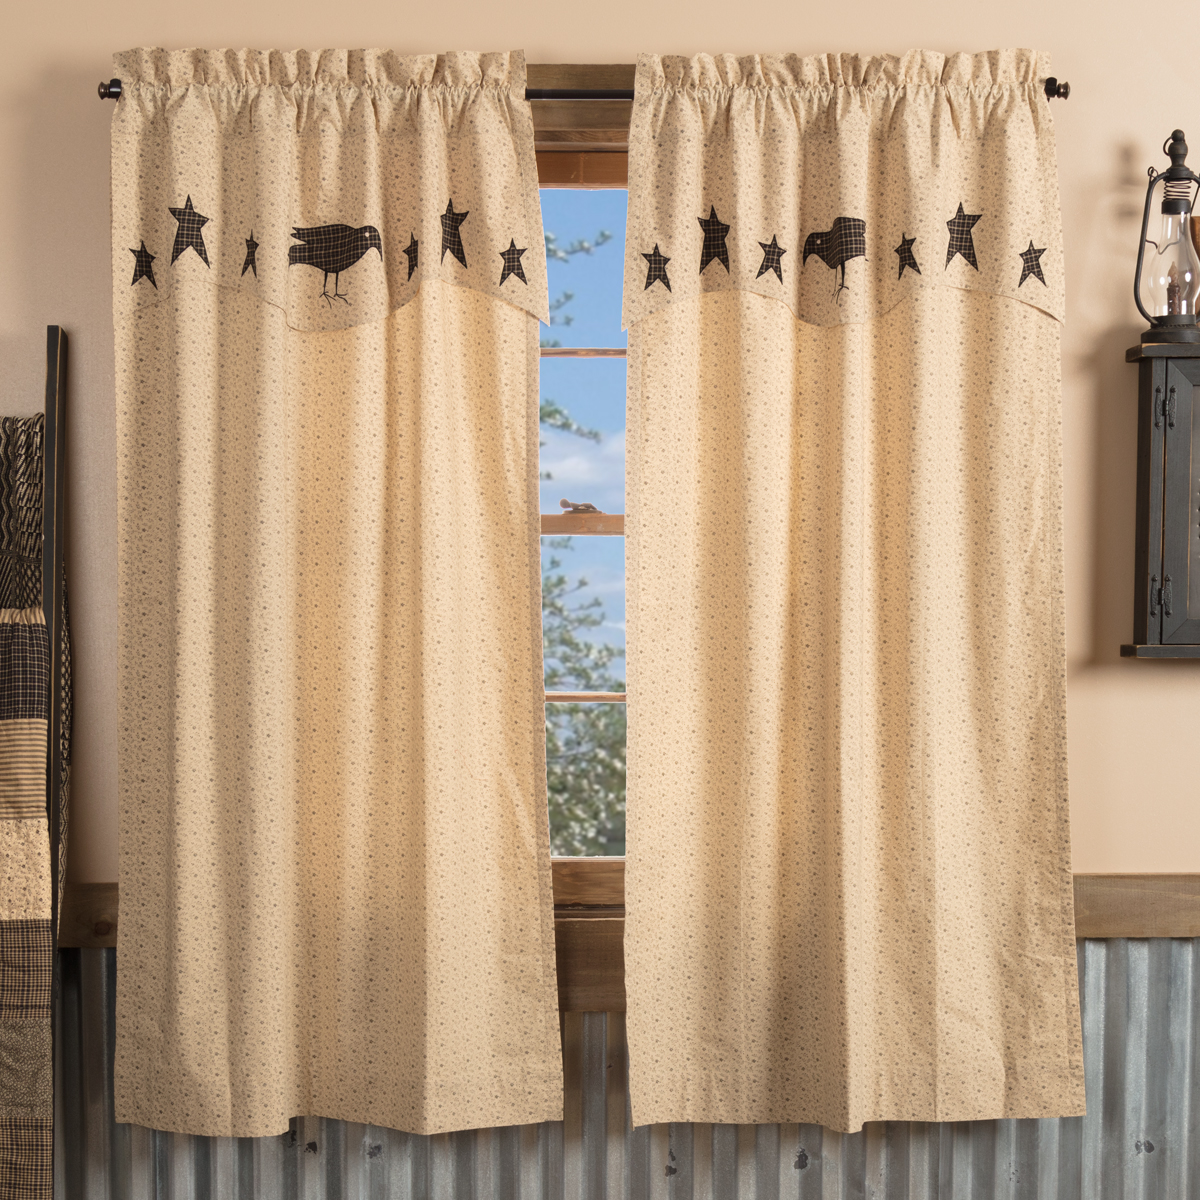 Kettle Grove Short Panel with Attached Applique Crow and Star Valance Set of 2 63x36